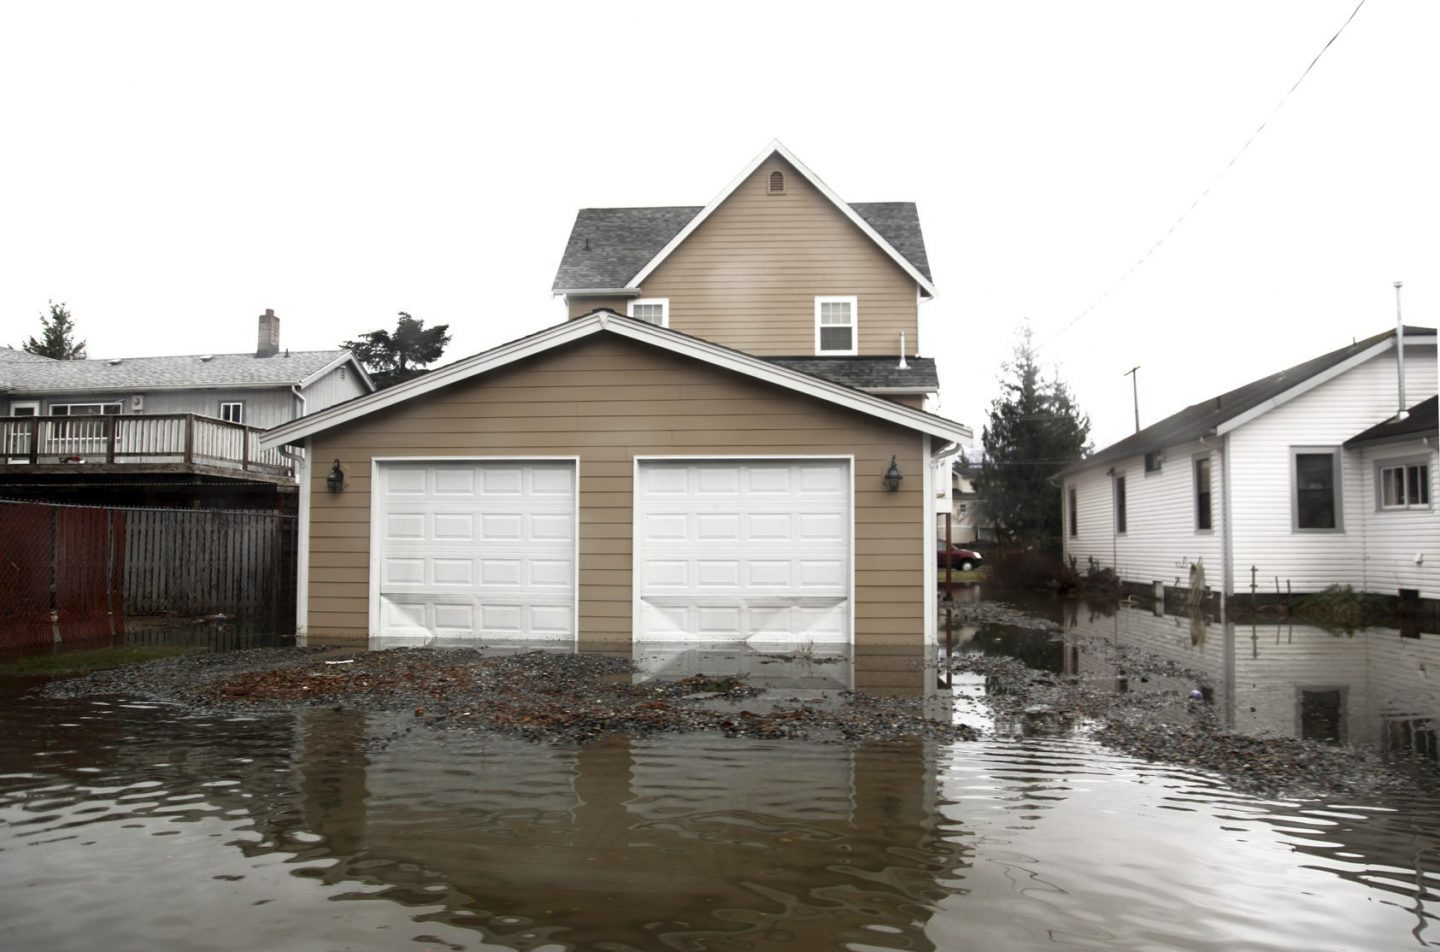 How to Prepare for Rain if You Live in a Flood Zone